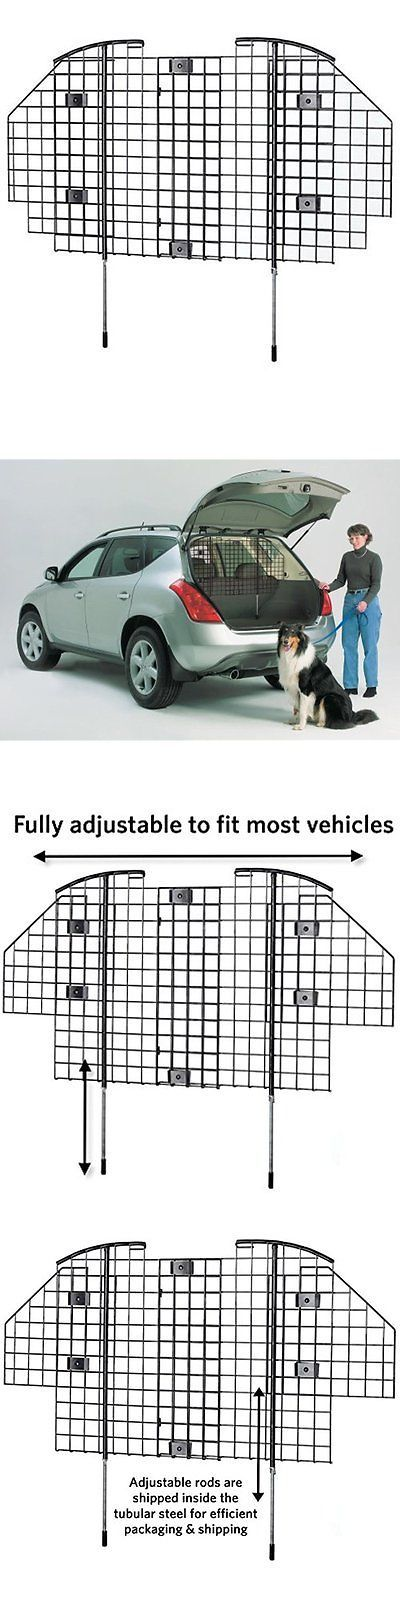 Car Seats and Barriers 46454: Midwest Beds And Equipment Pet Dog Car Barrier Guard Automotive Safety Protect Suv -> BUY IT NOW ONLY: $68.45 on eBay!